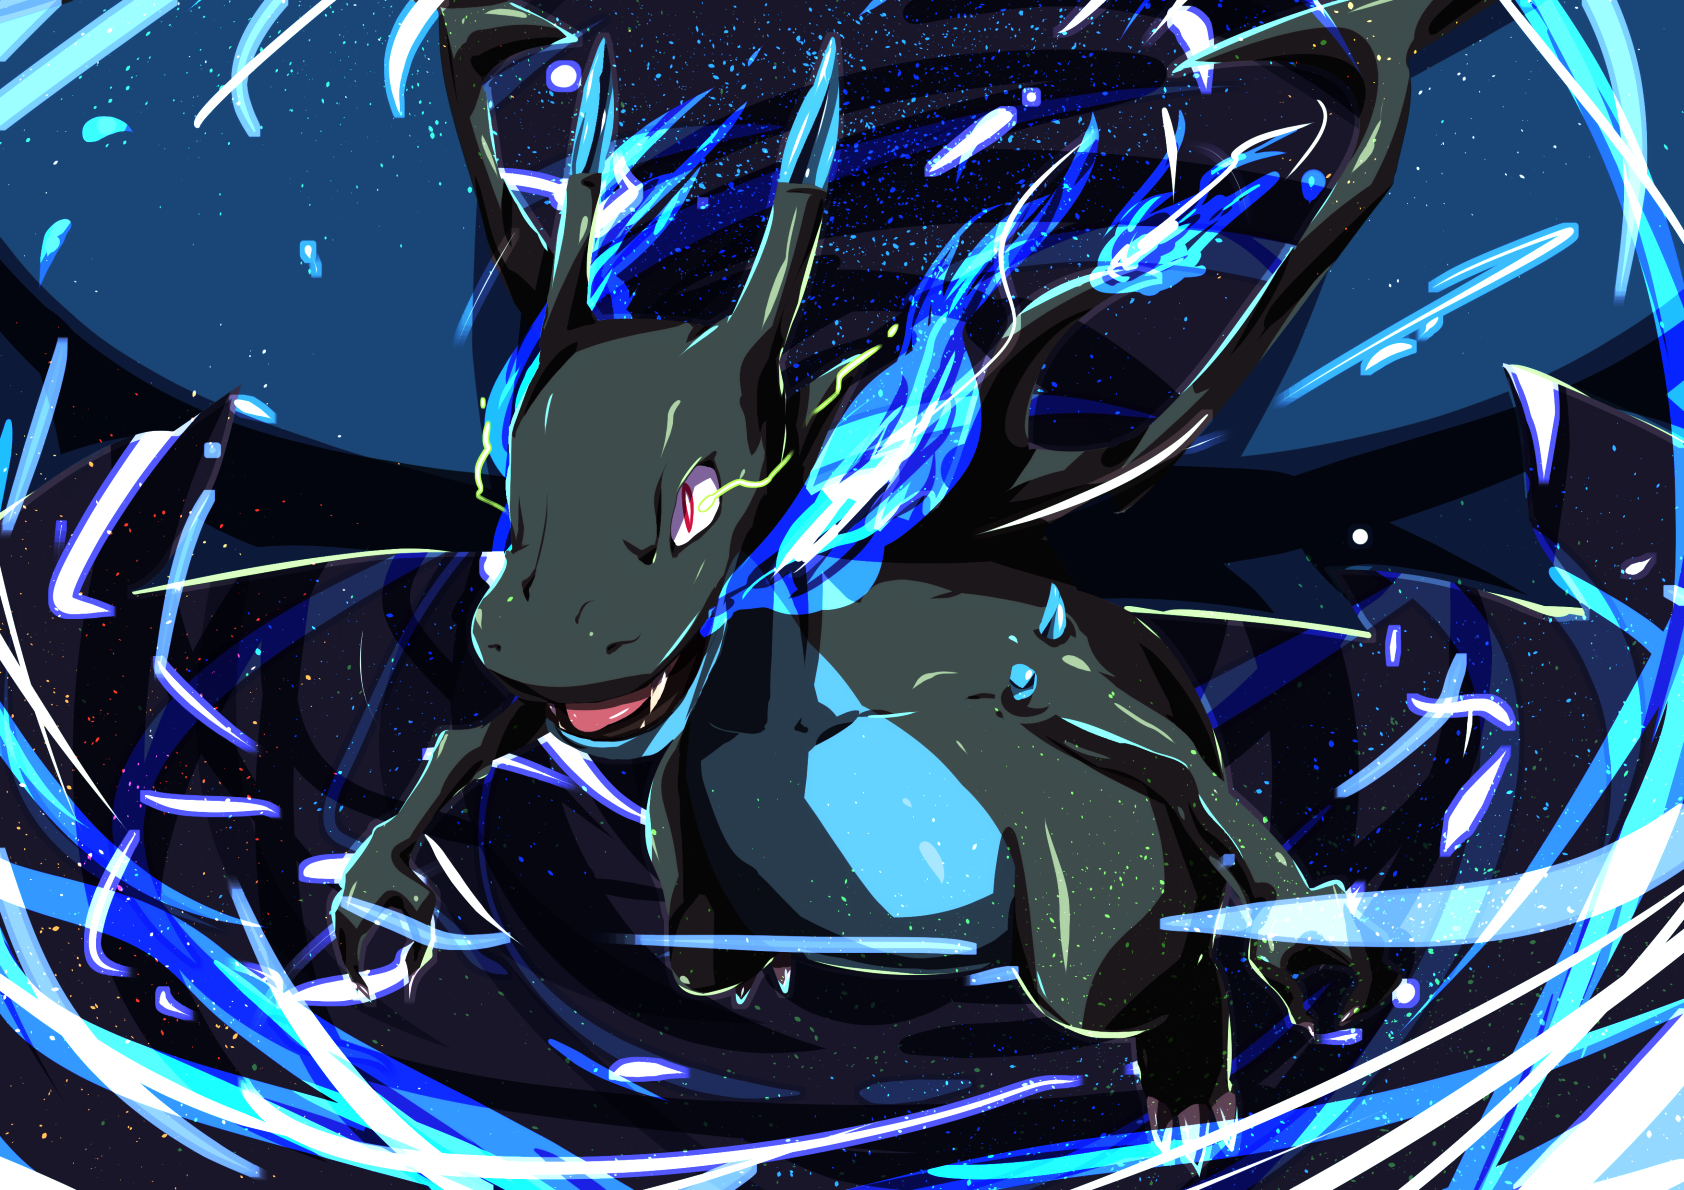 Charizard Wallpaper and Background Image | 1684x1190 | ID ...